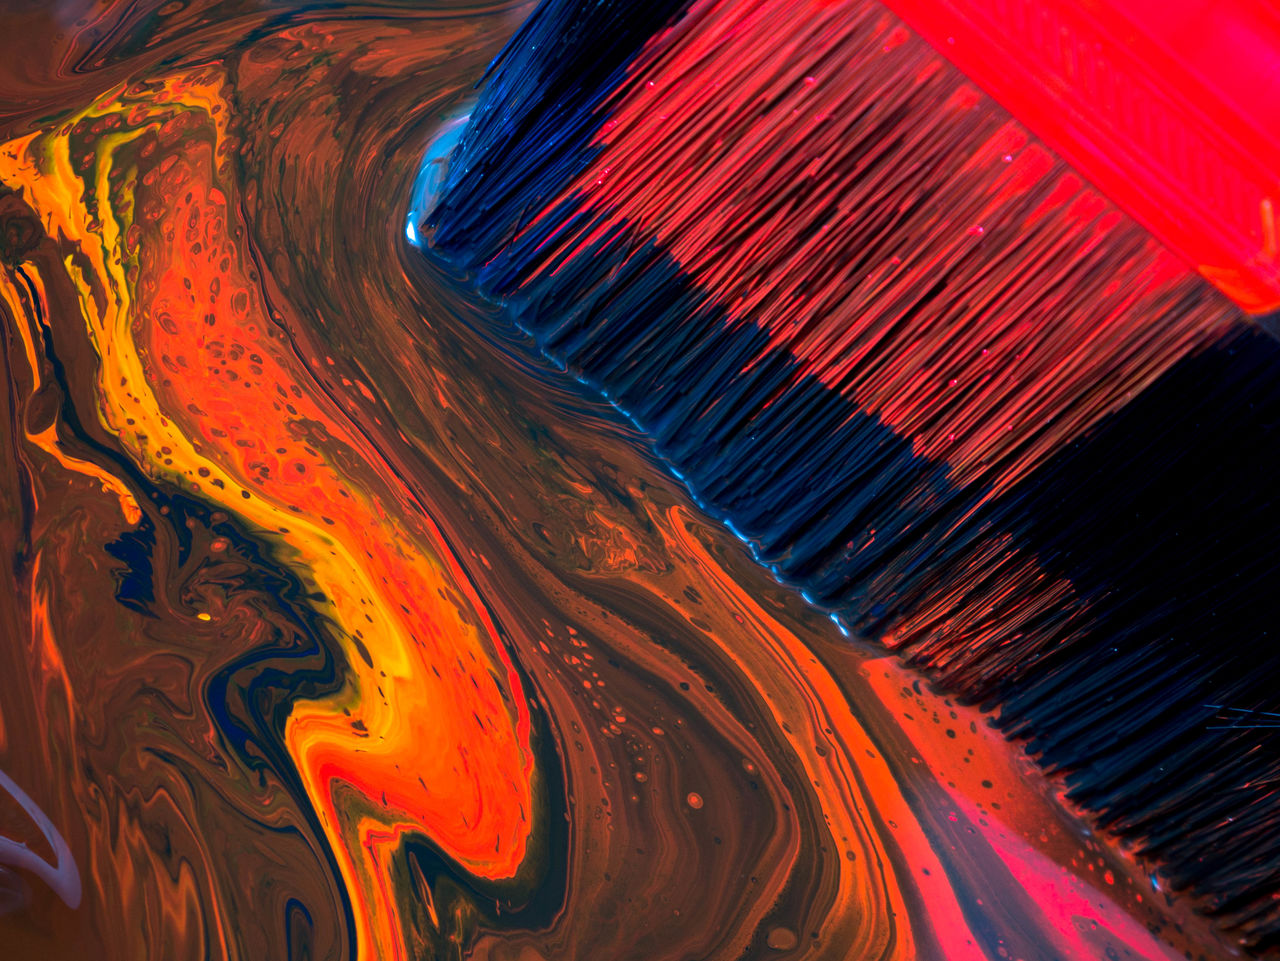 Detail shot of abstract painting